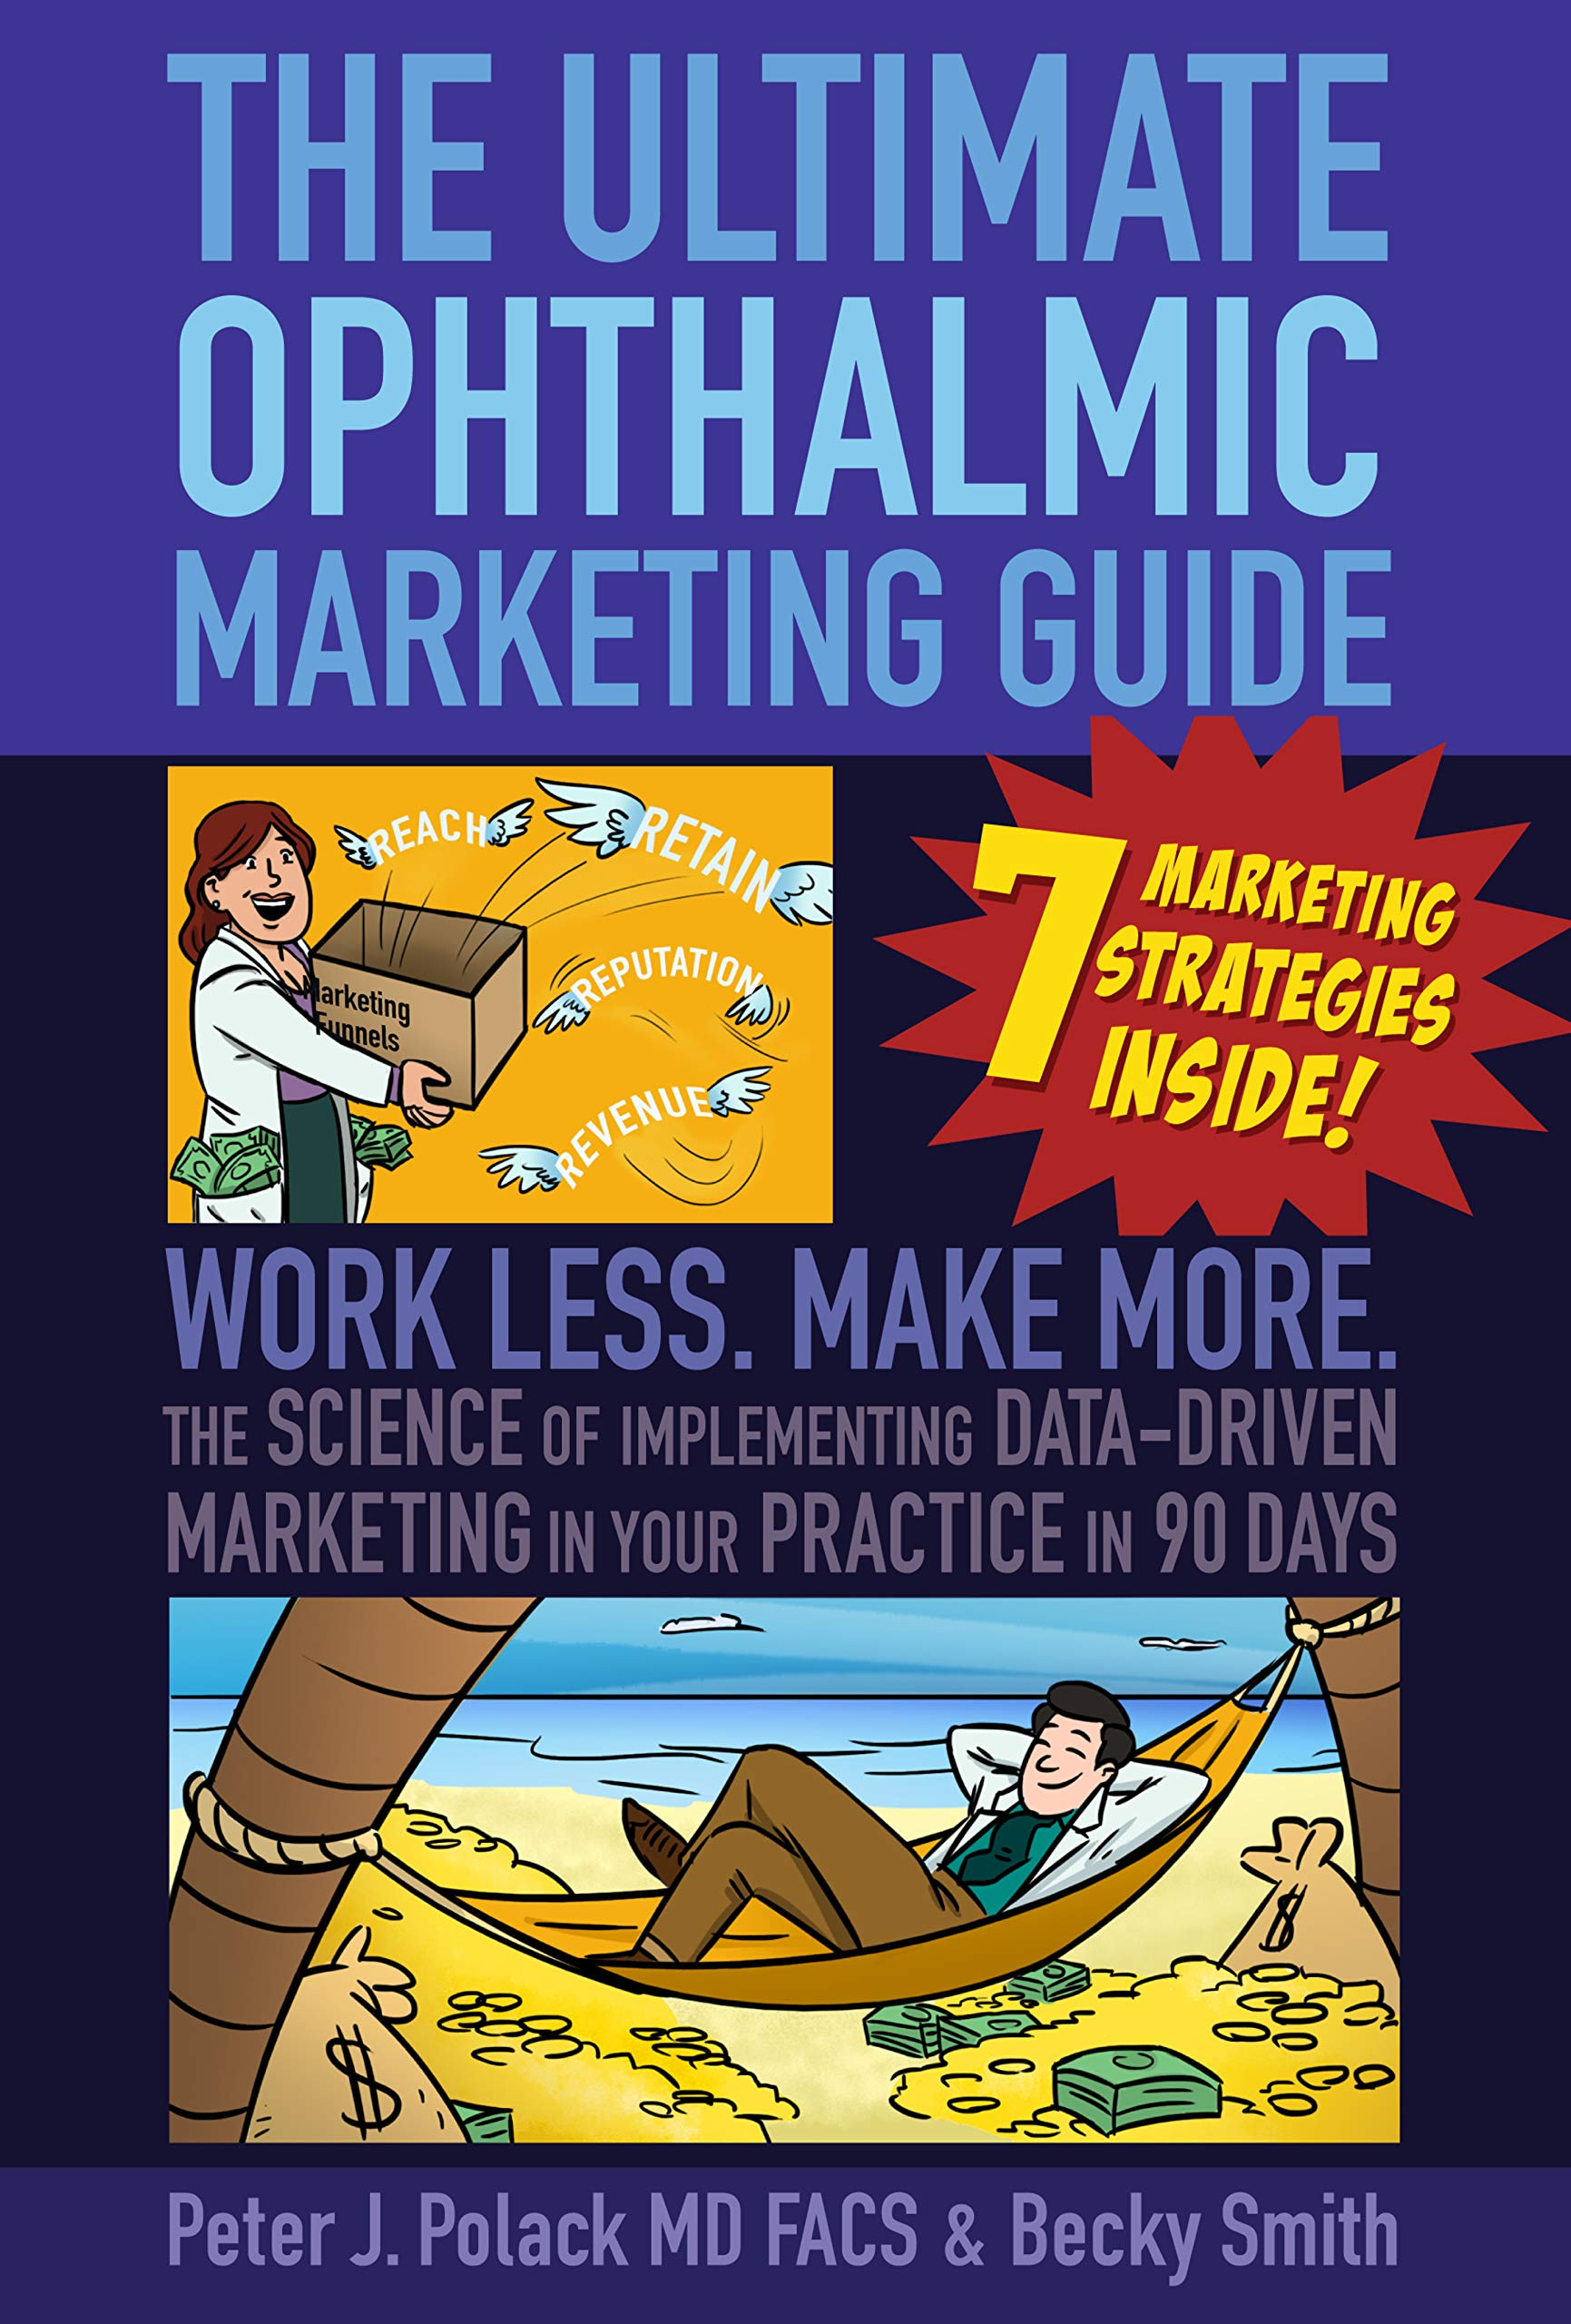 The Ultimate Ophthalmic Marketing Guide: Work Less. Make More. The Science of Implementing Data-Driven Marketing in Your Practice in 90 Days